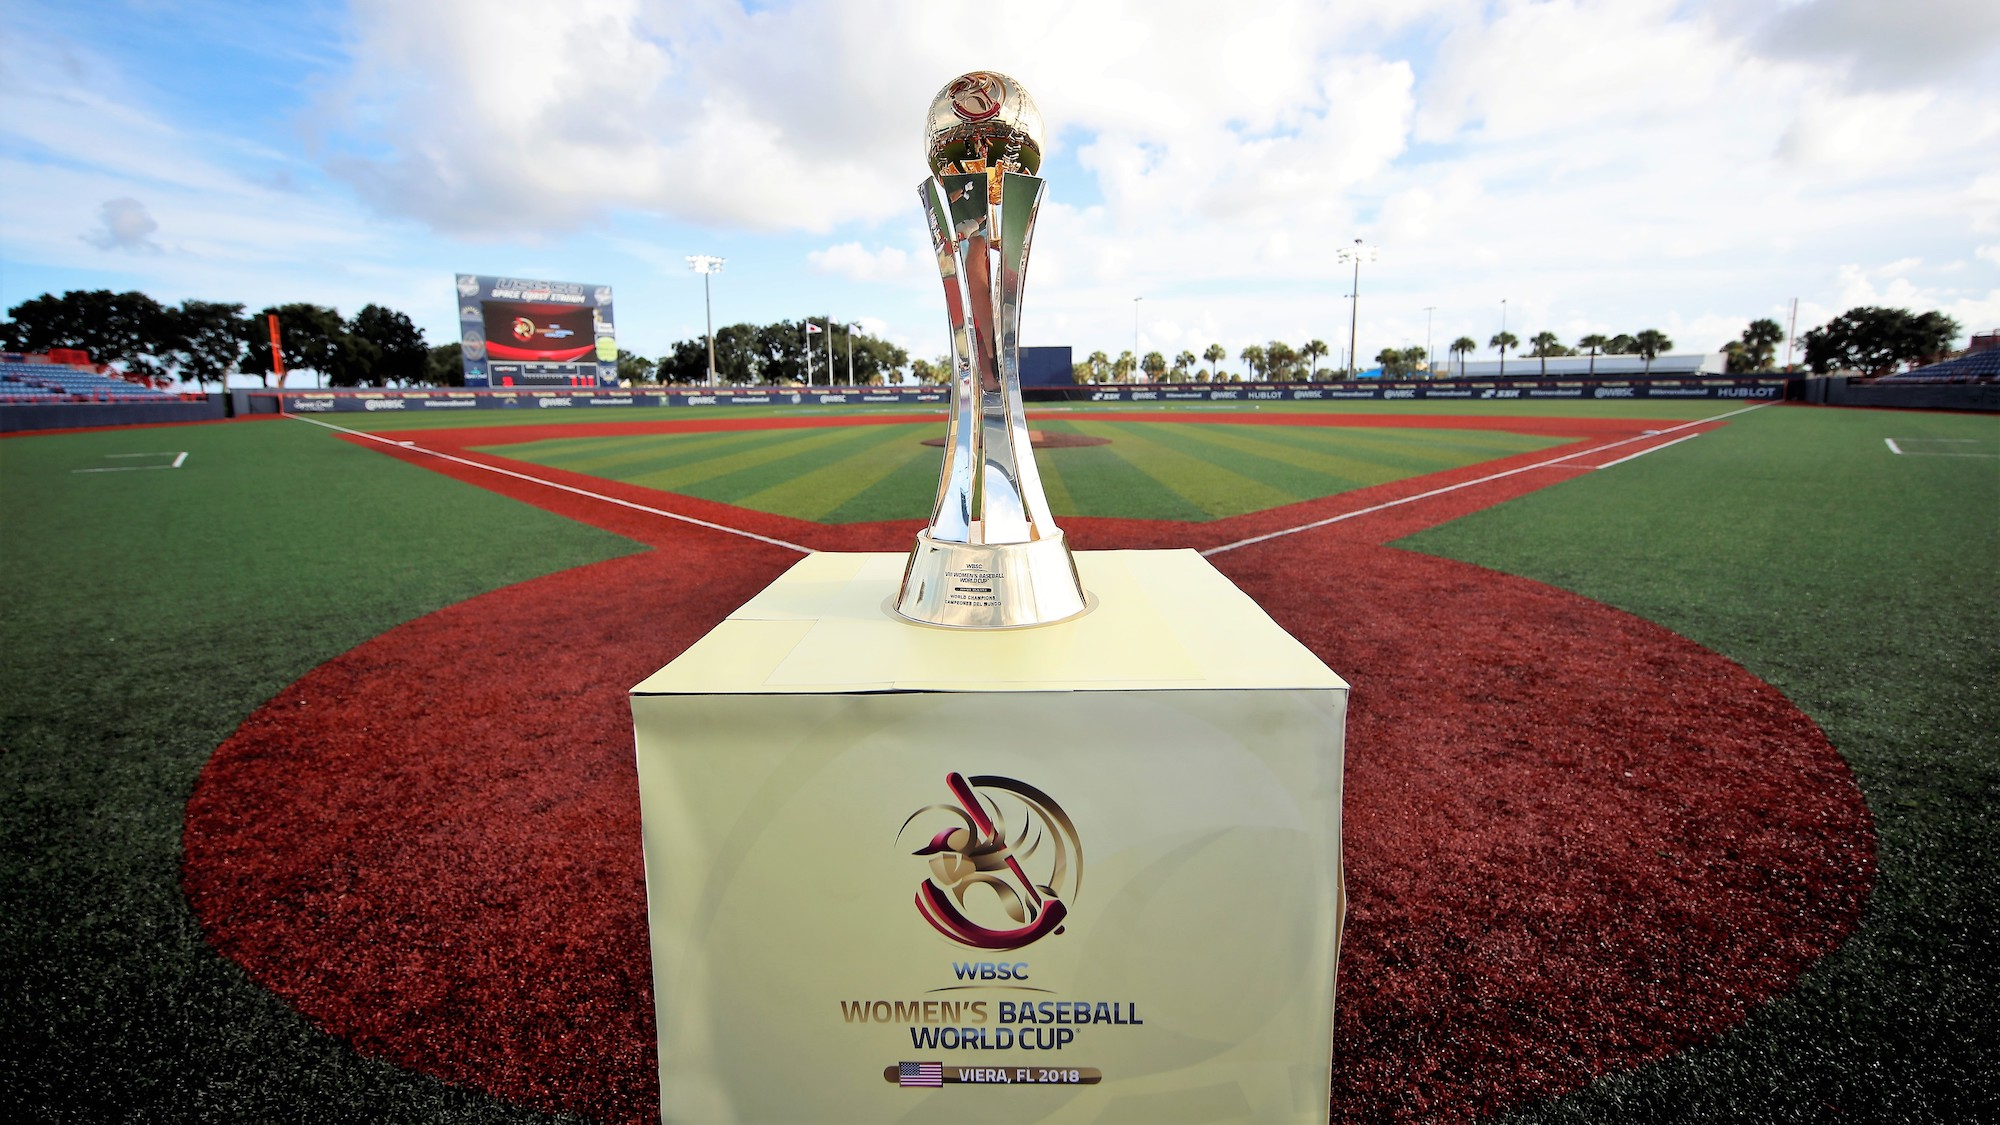 WBSC postpones Women's Baseball World Cup